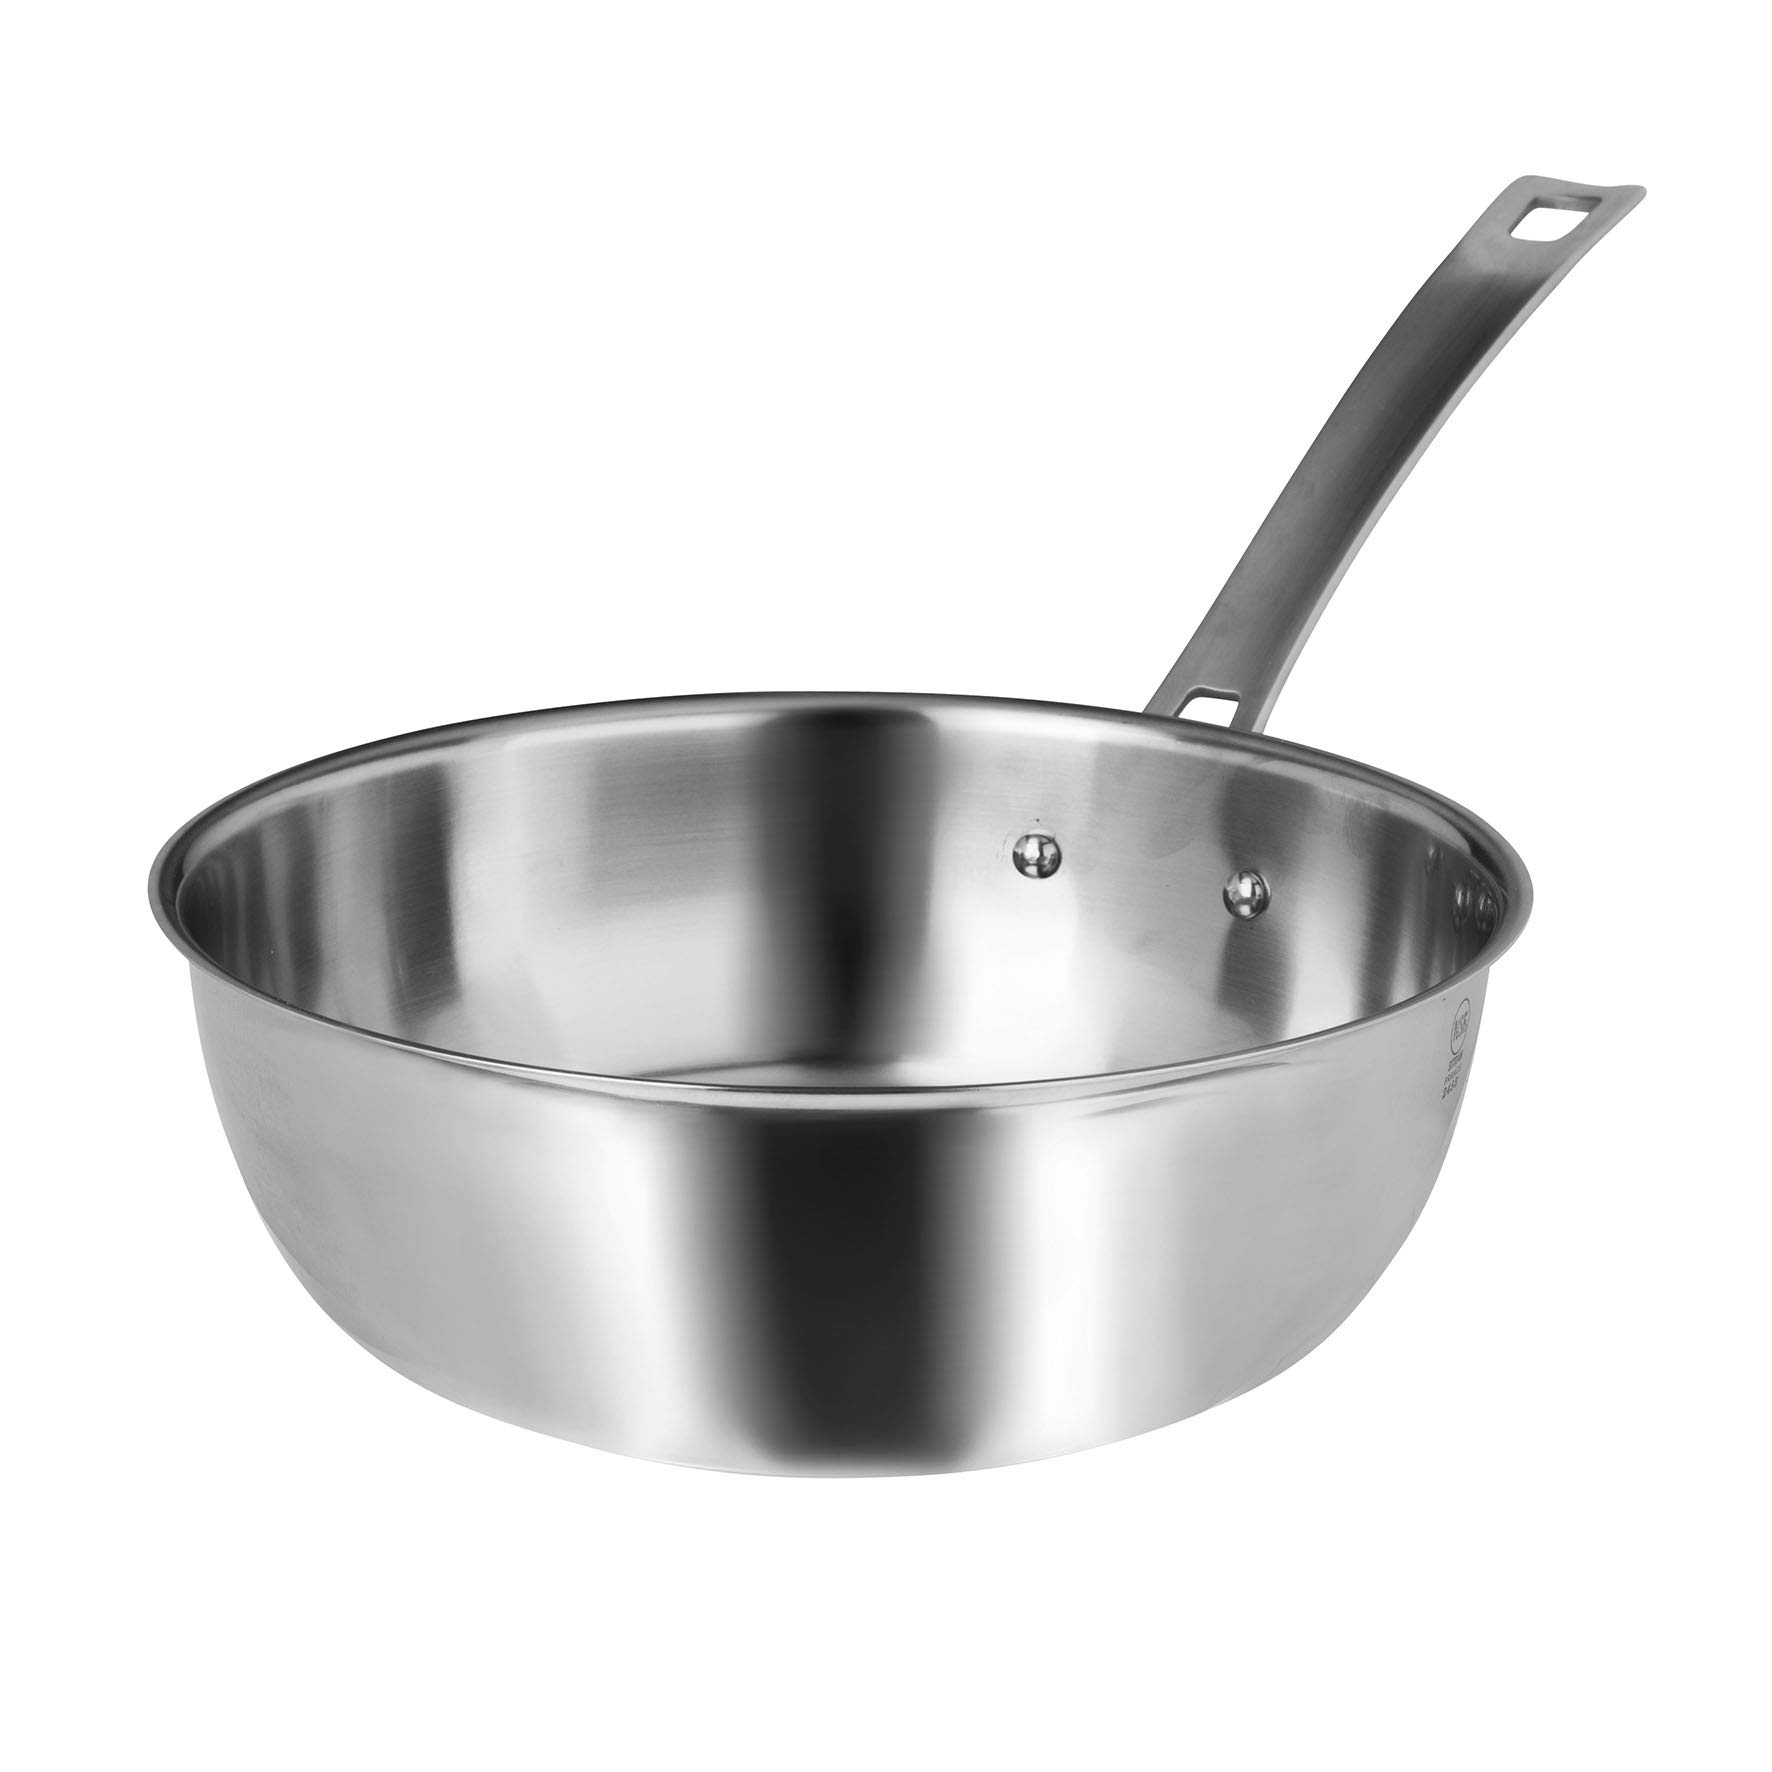 Sitram 712302 HORECA - R Stainless Steel Cookware, 24 cm - 9.45 in Conical Sauteuse